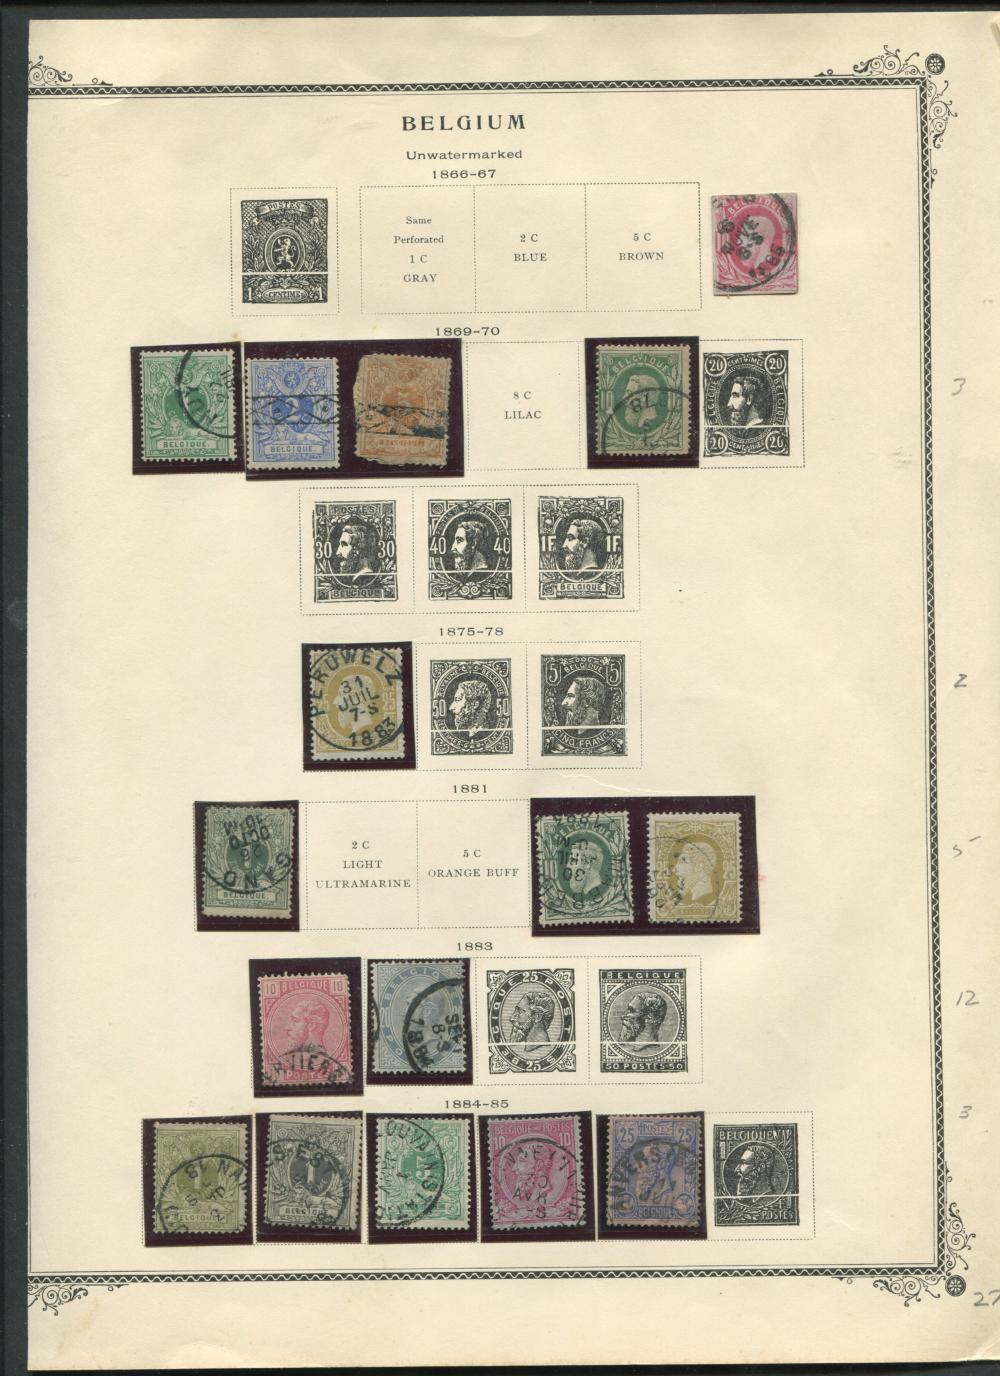 Belgium 1861-1907 Stamp Collection